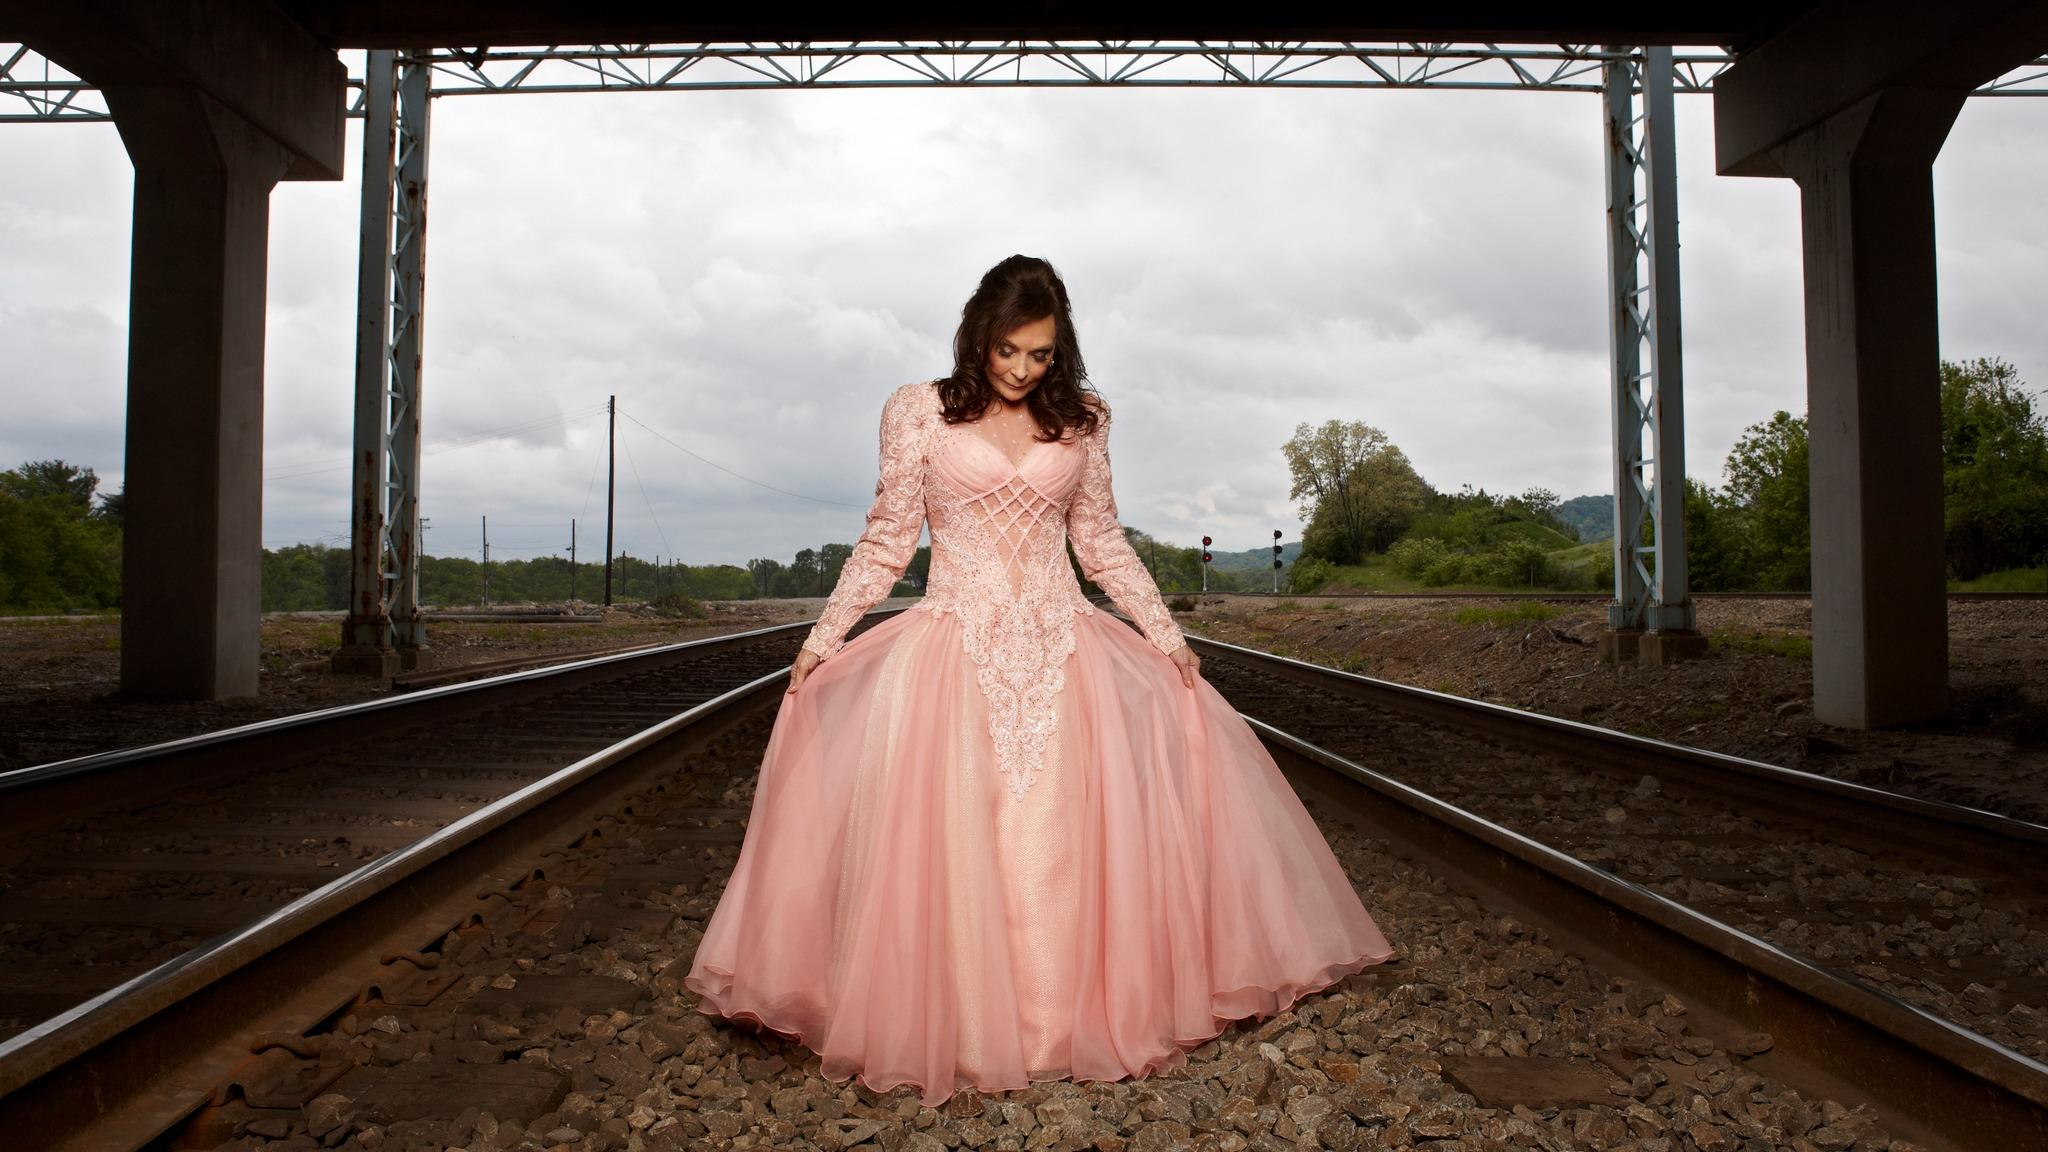 Loretta Lynn at The Mahaffey Theater